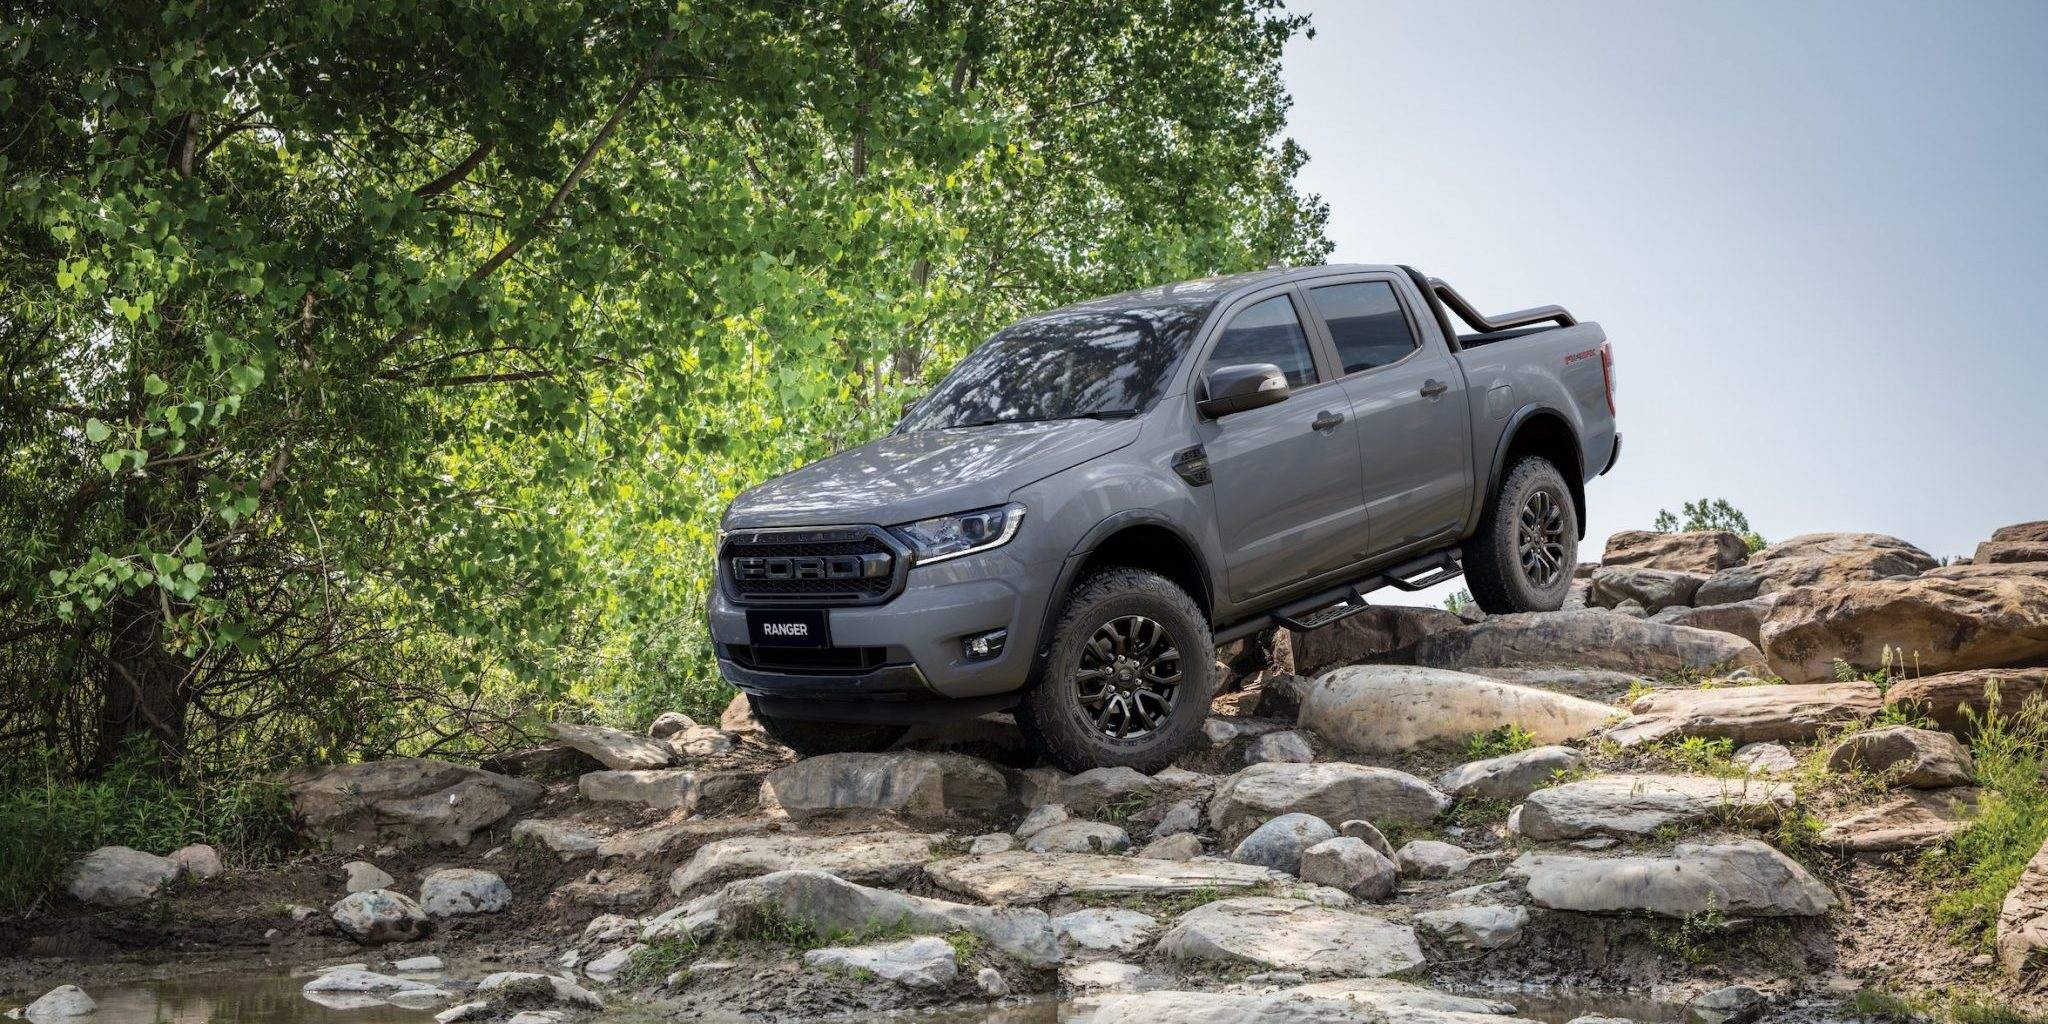 Ford Ranger Fx4 Max Rocks Scaled E1600397292255